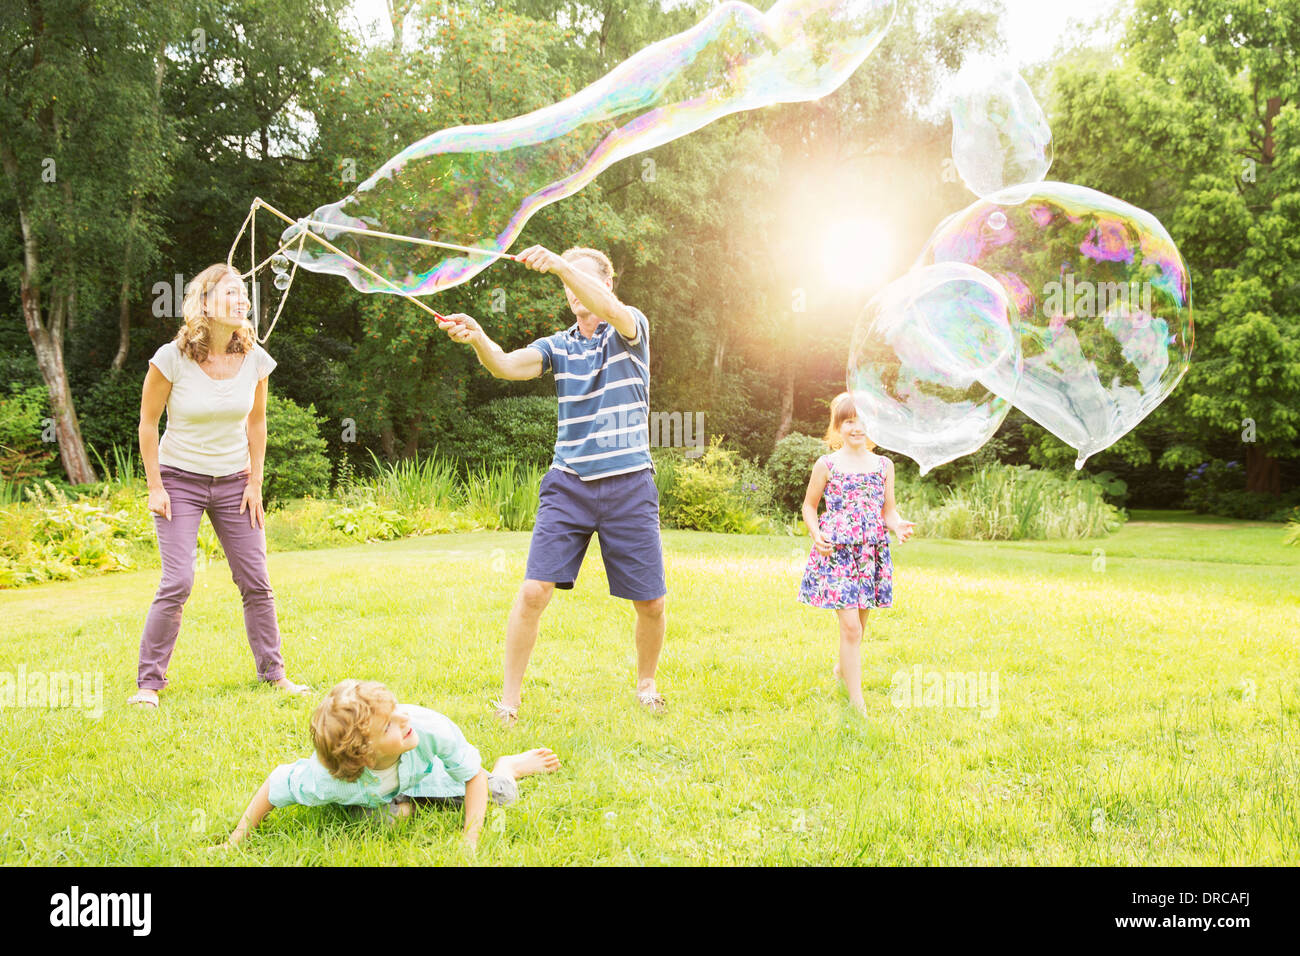 Family playing with large bubbles in backyard Stock Photo